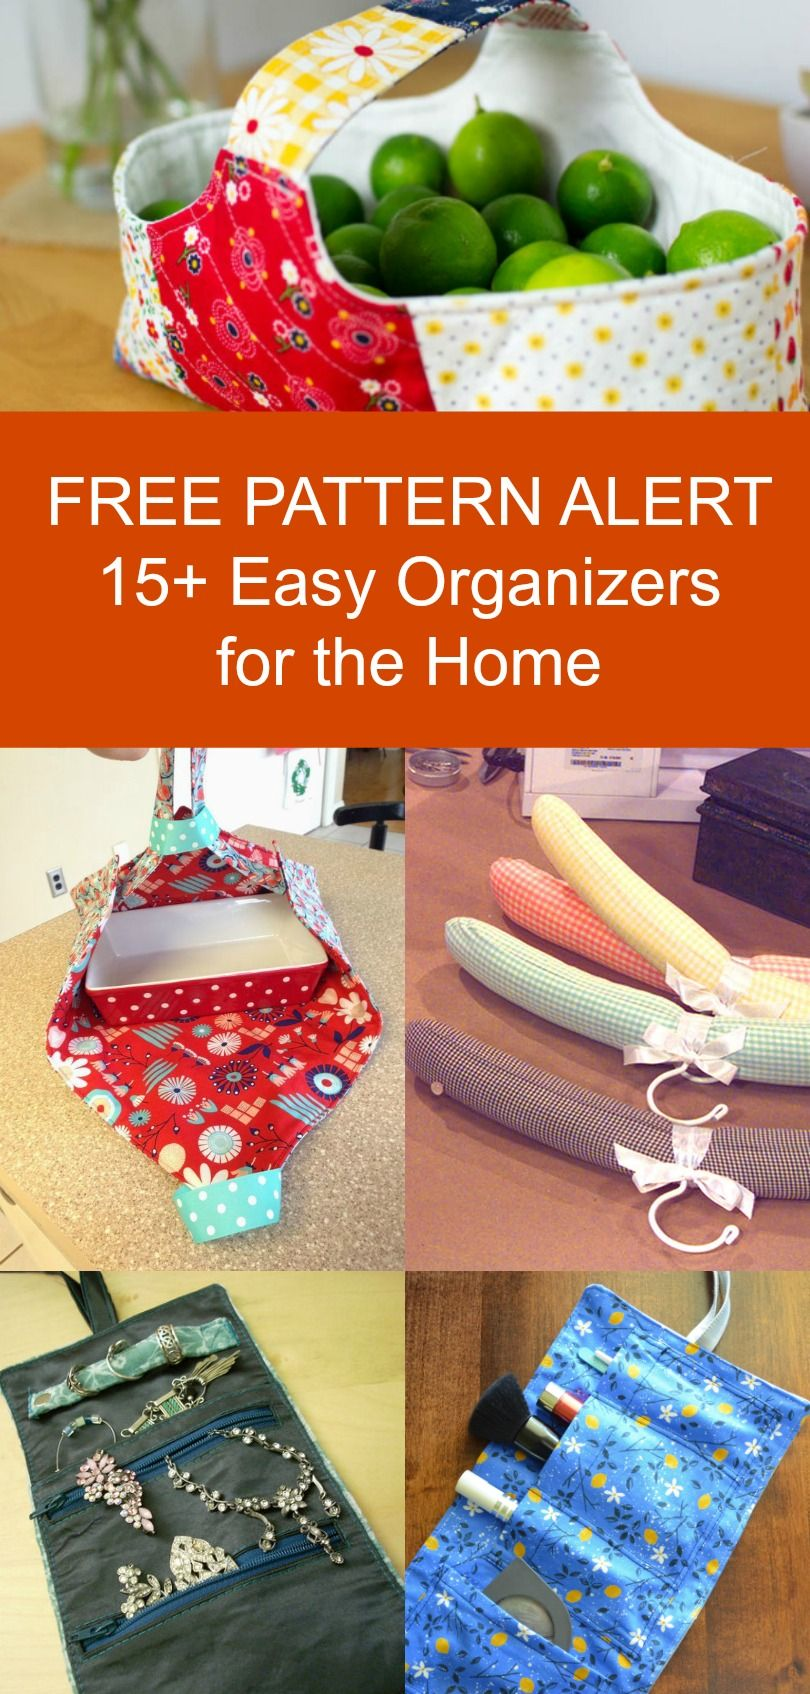 FREE PATTERN ALERT: 15+ Organizers for the home